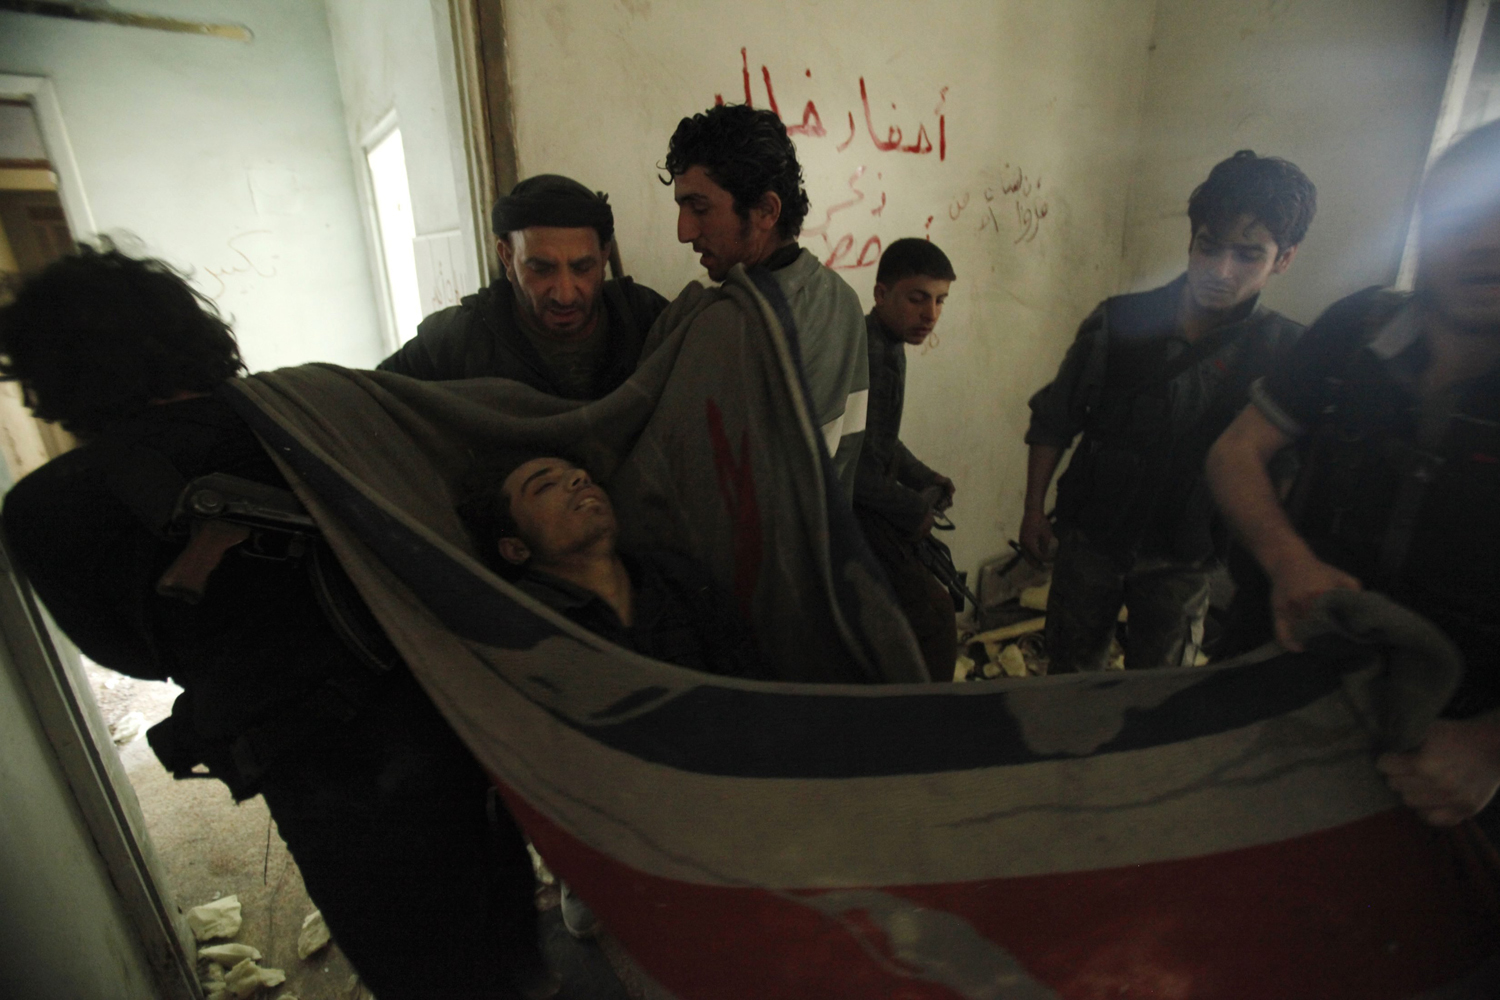 Apr. 9, 2014. Rebel fighters carry the body of a fellow fighter who was killed during what they said was an offensive against forces loyal to Syria's President Bashar al-Assad in the al-Amriyeh neighbourhood of Syria's northwestern city of Aleppo.